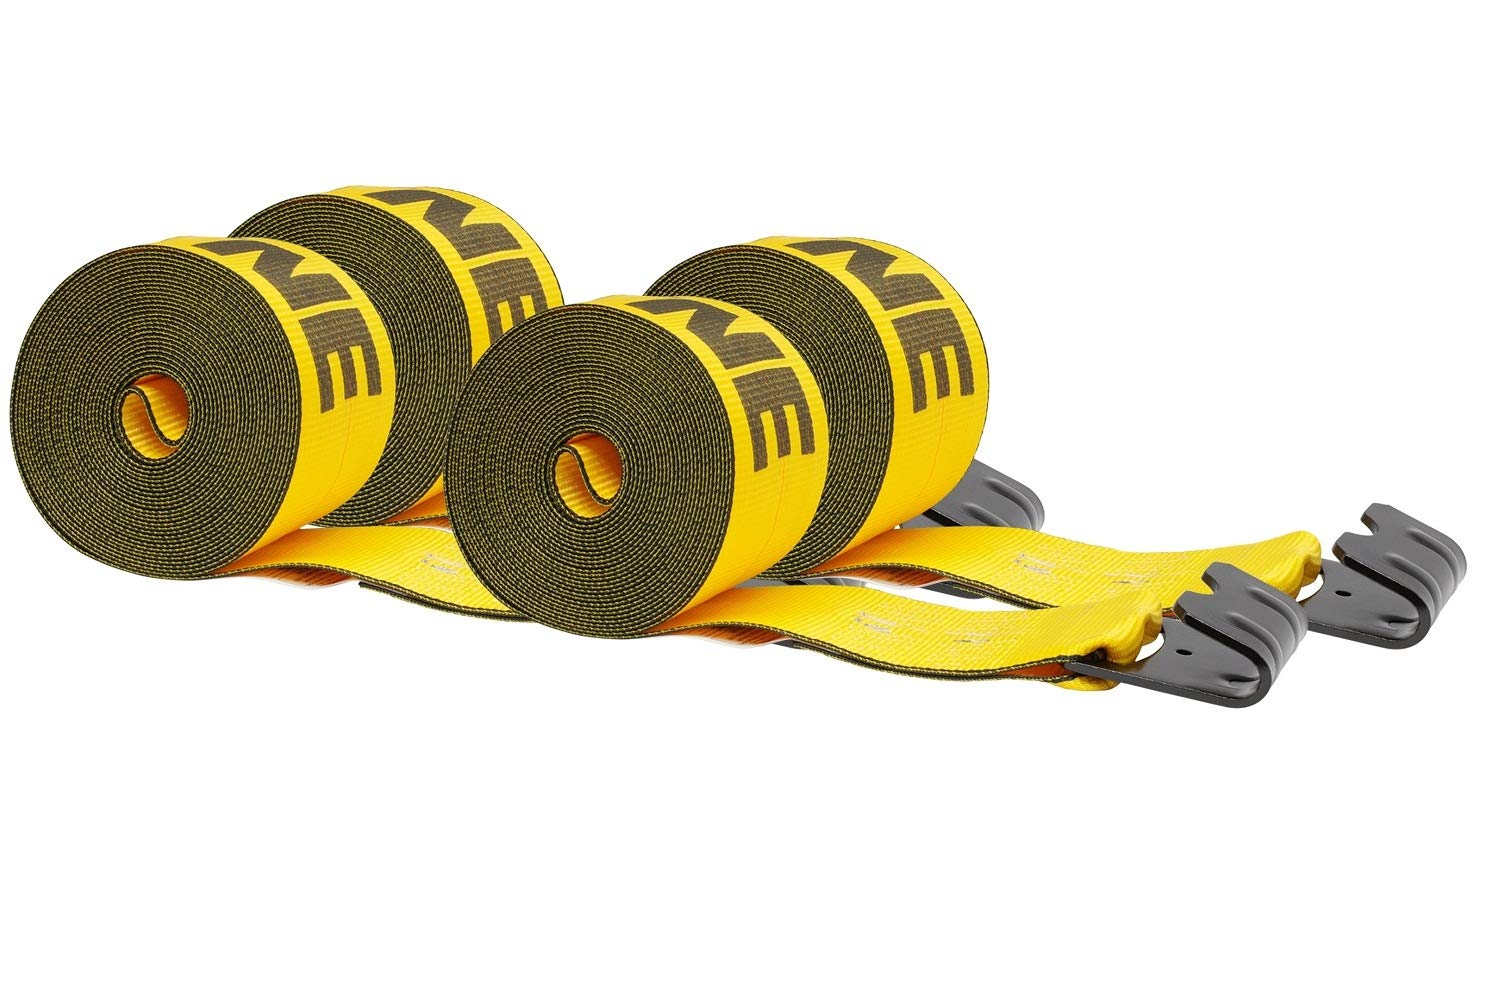 Mytee Products (4 Pack) Kinedyne 4'' x30' Winch Straps w/Flat Hook, WLL 5400 Trailer Flatbed Tie Down Strap - Gold by Mytee Products